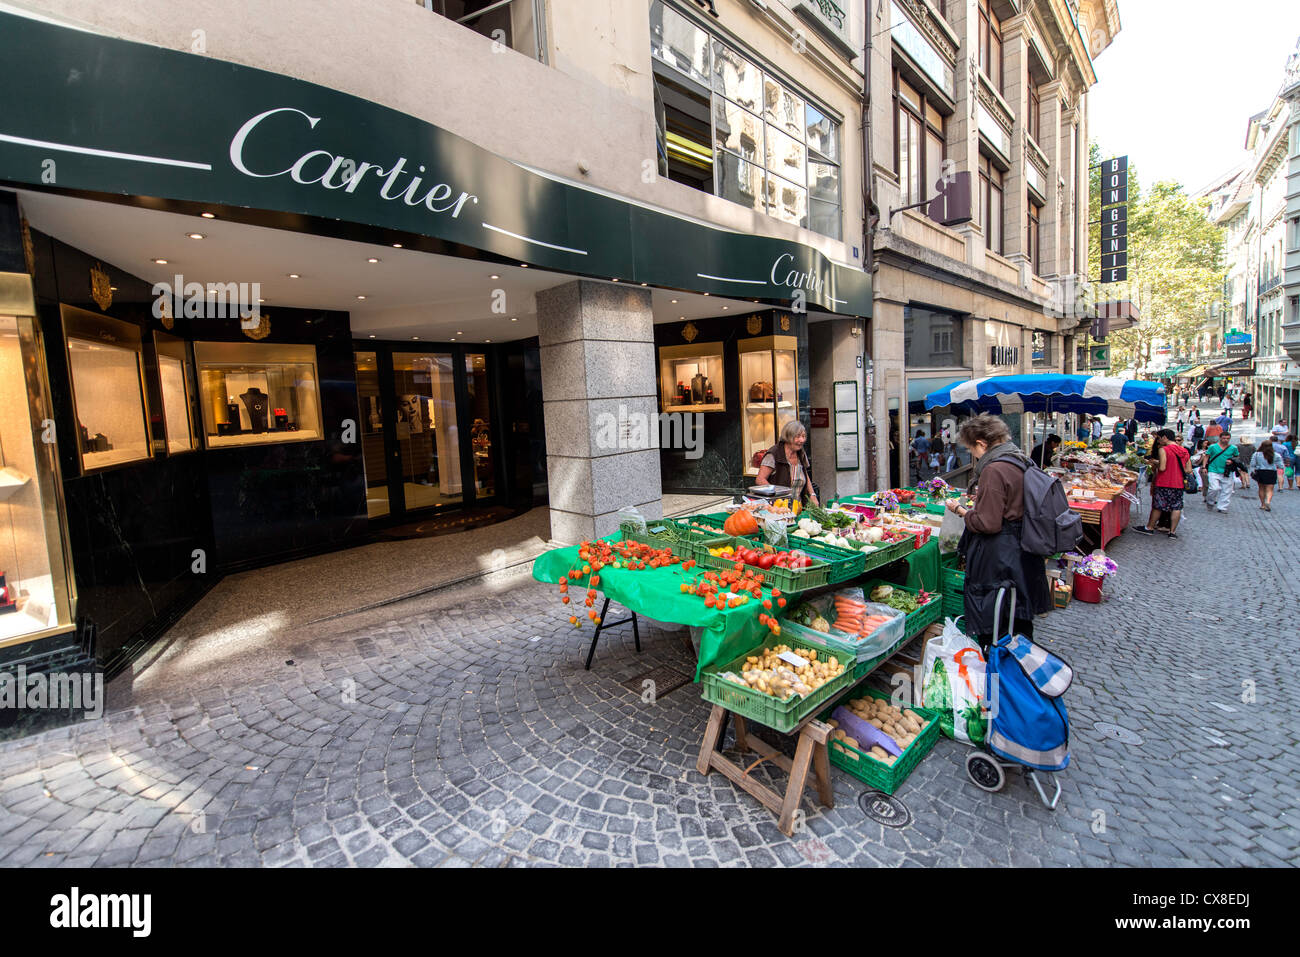 Street food market by Cartier jewellery jewelry shop in Lausanne Switzerland - Stock Image